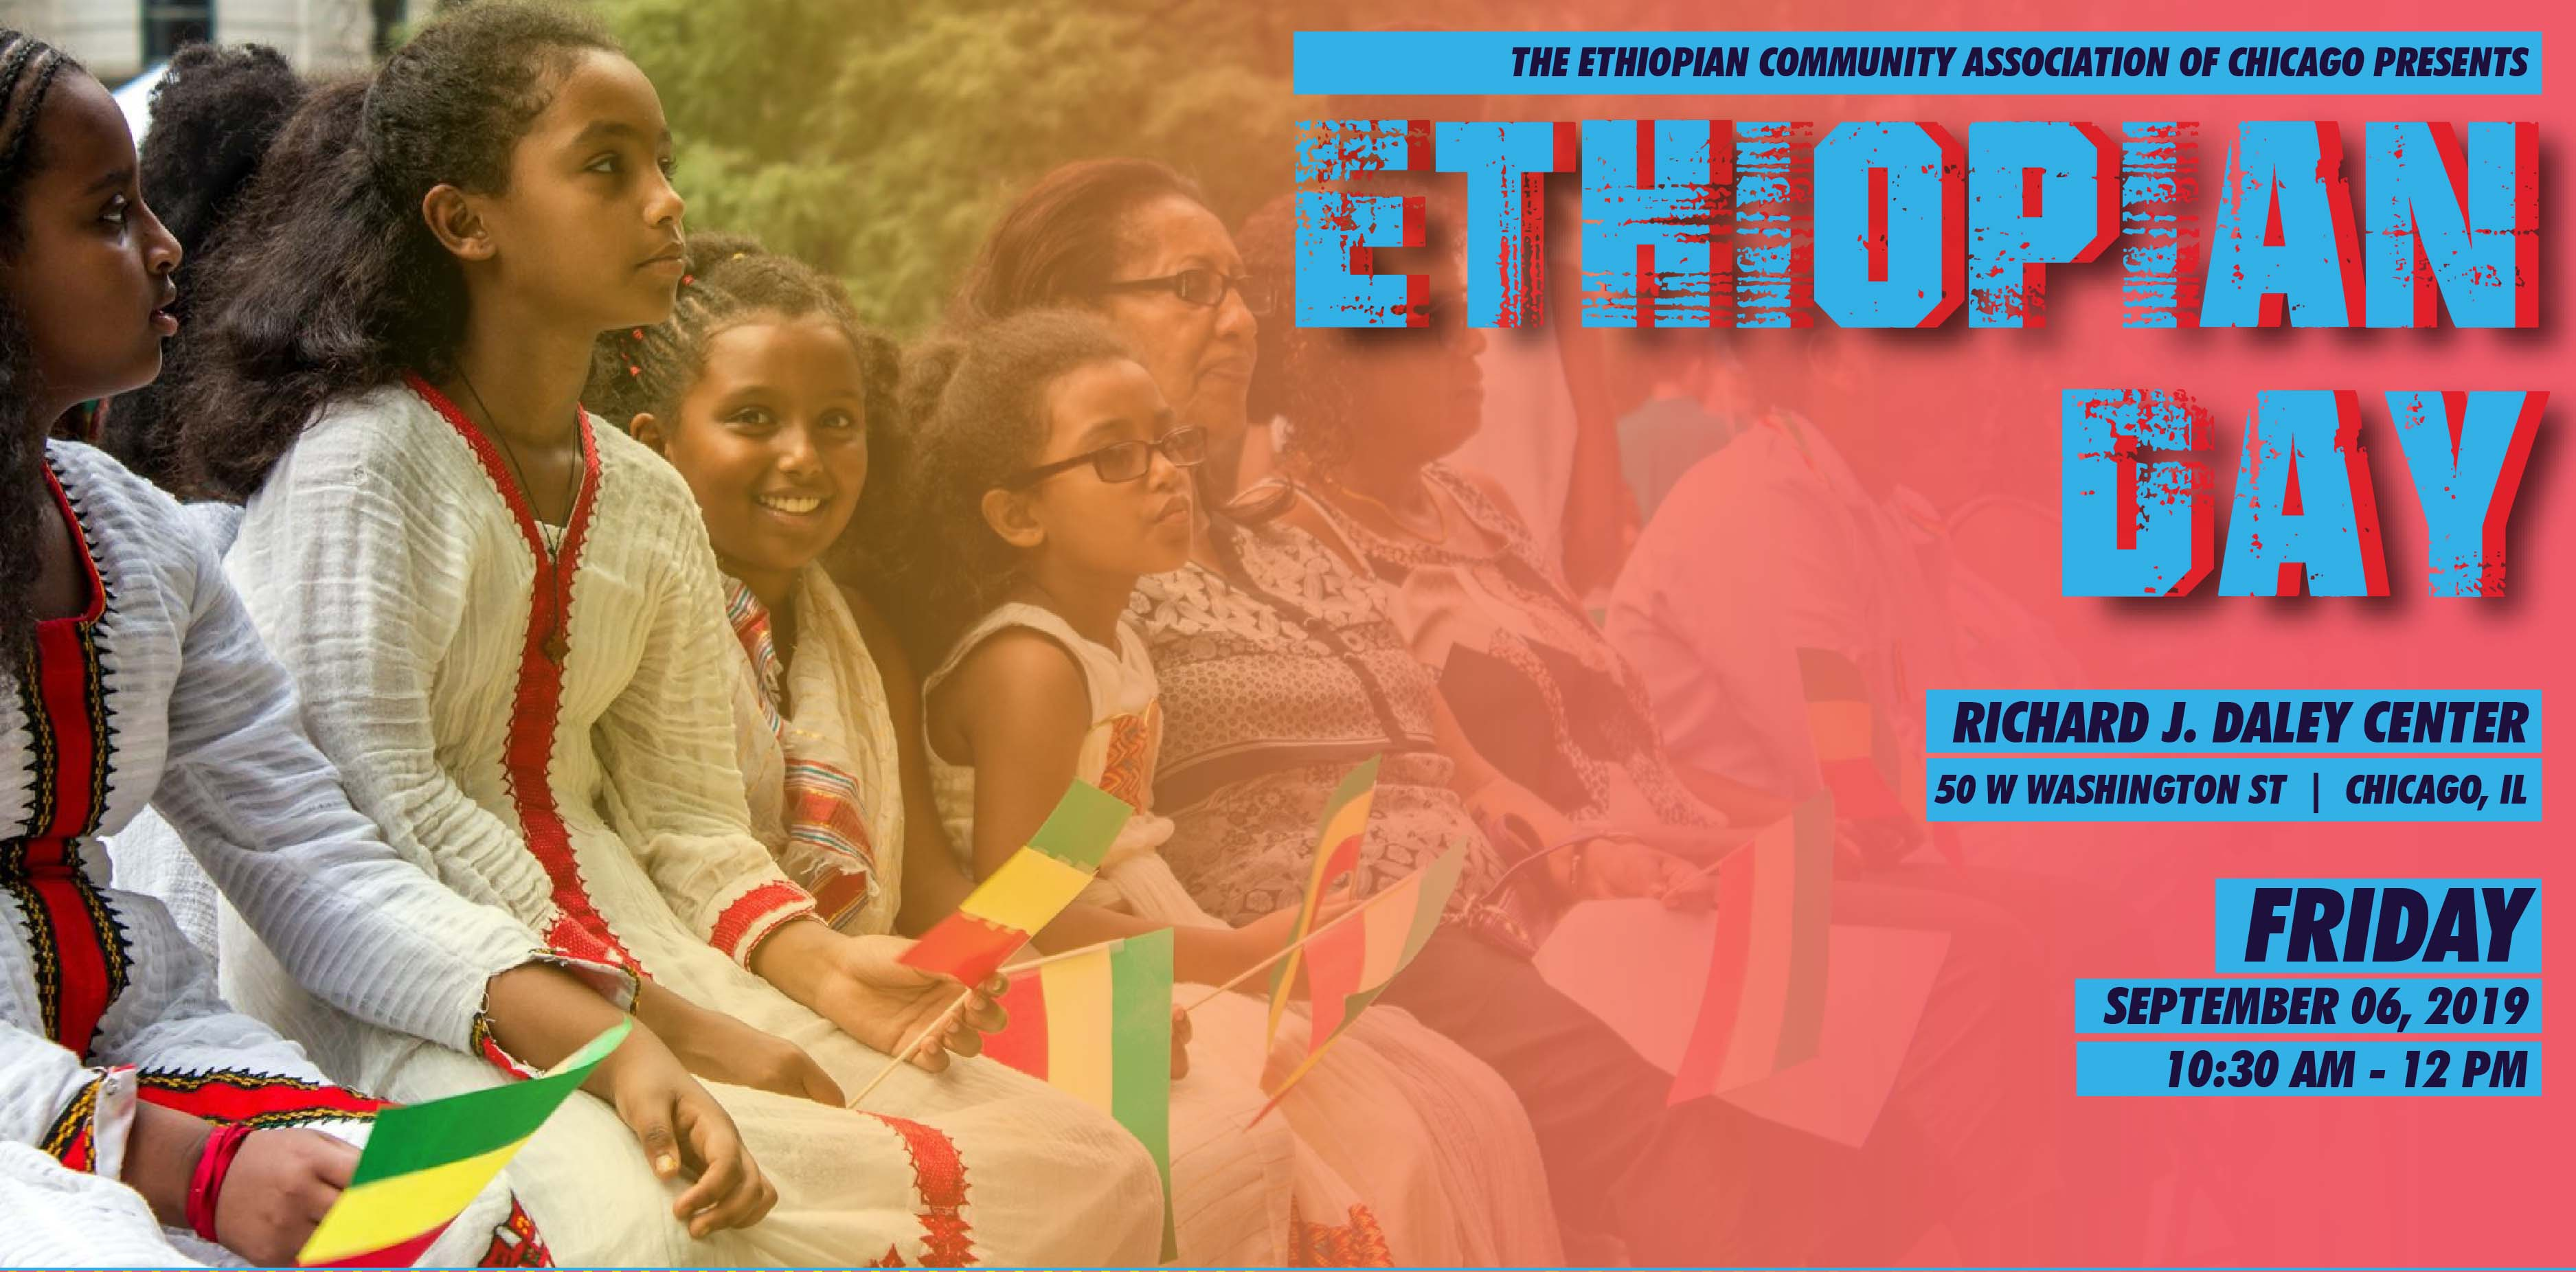 The Ethiopian Community Association of Chicago: Serving